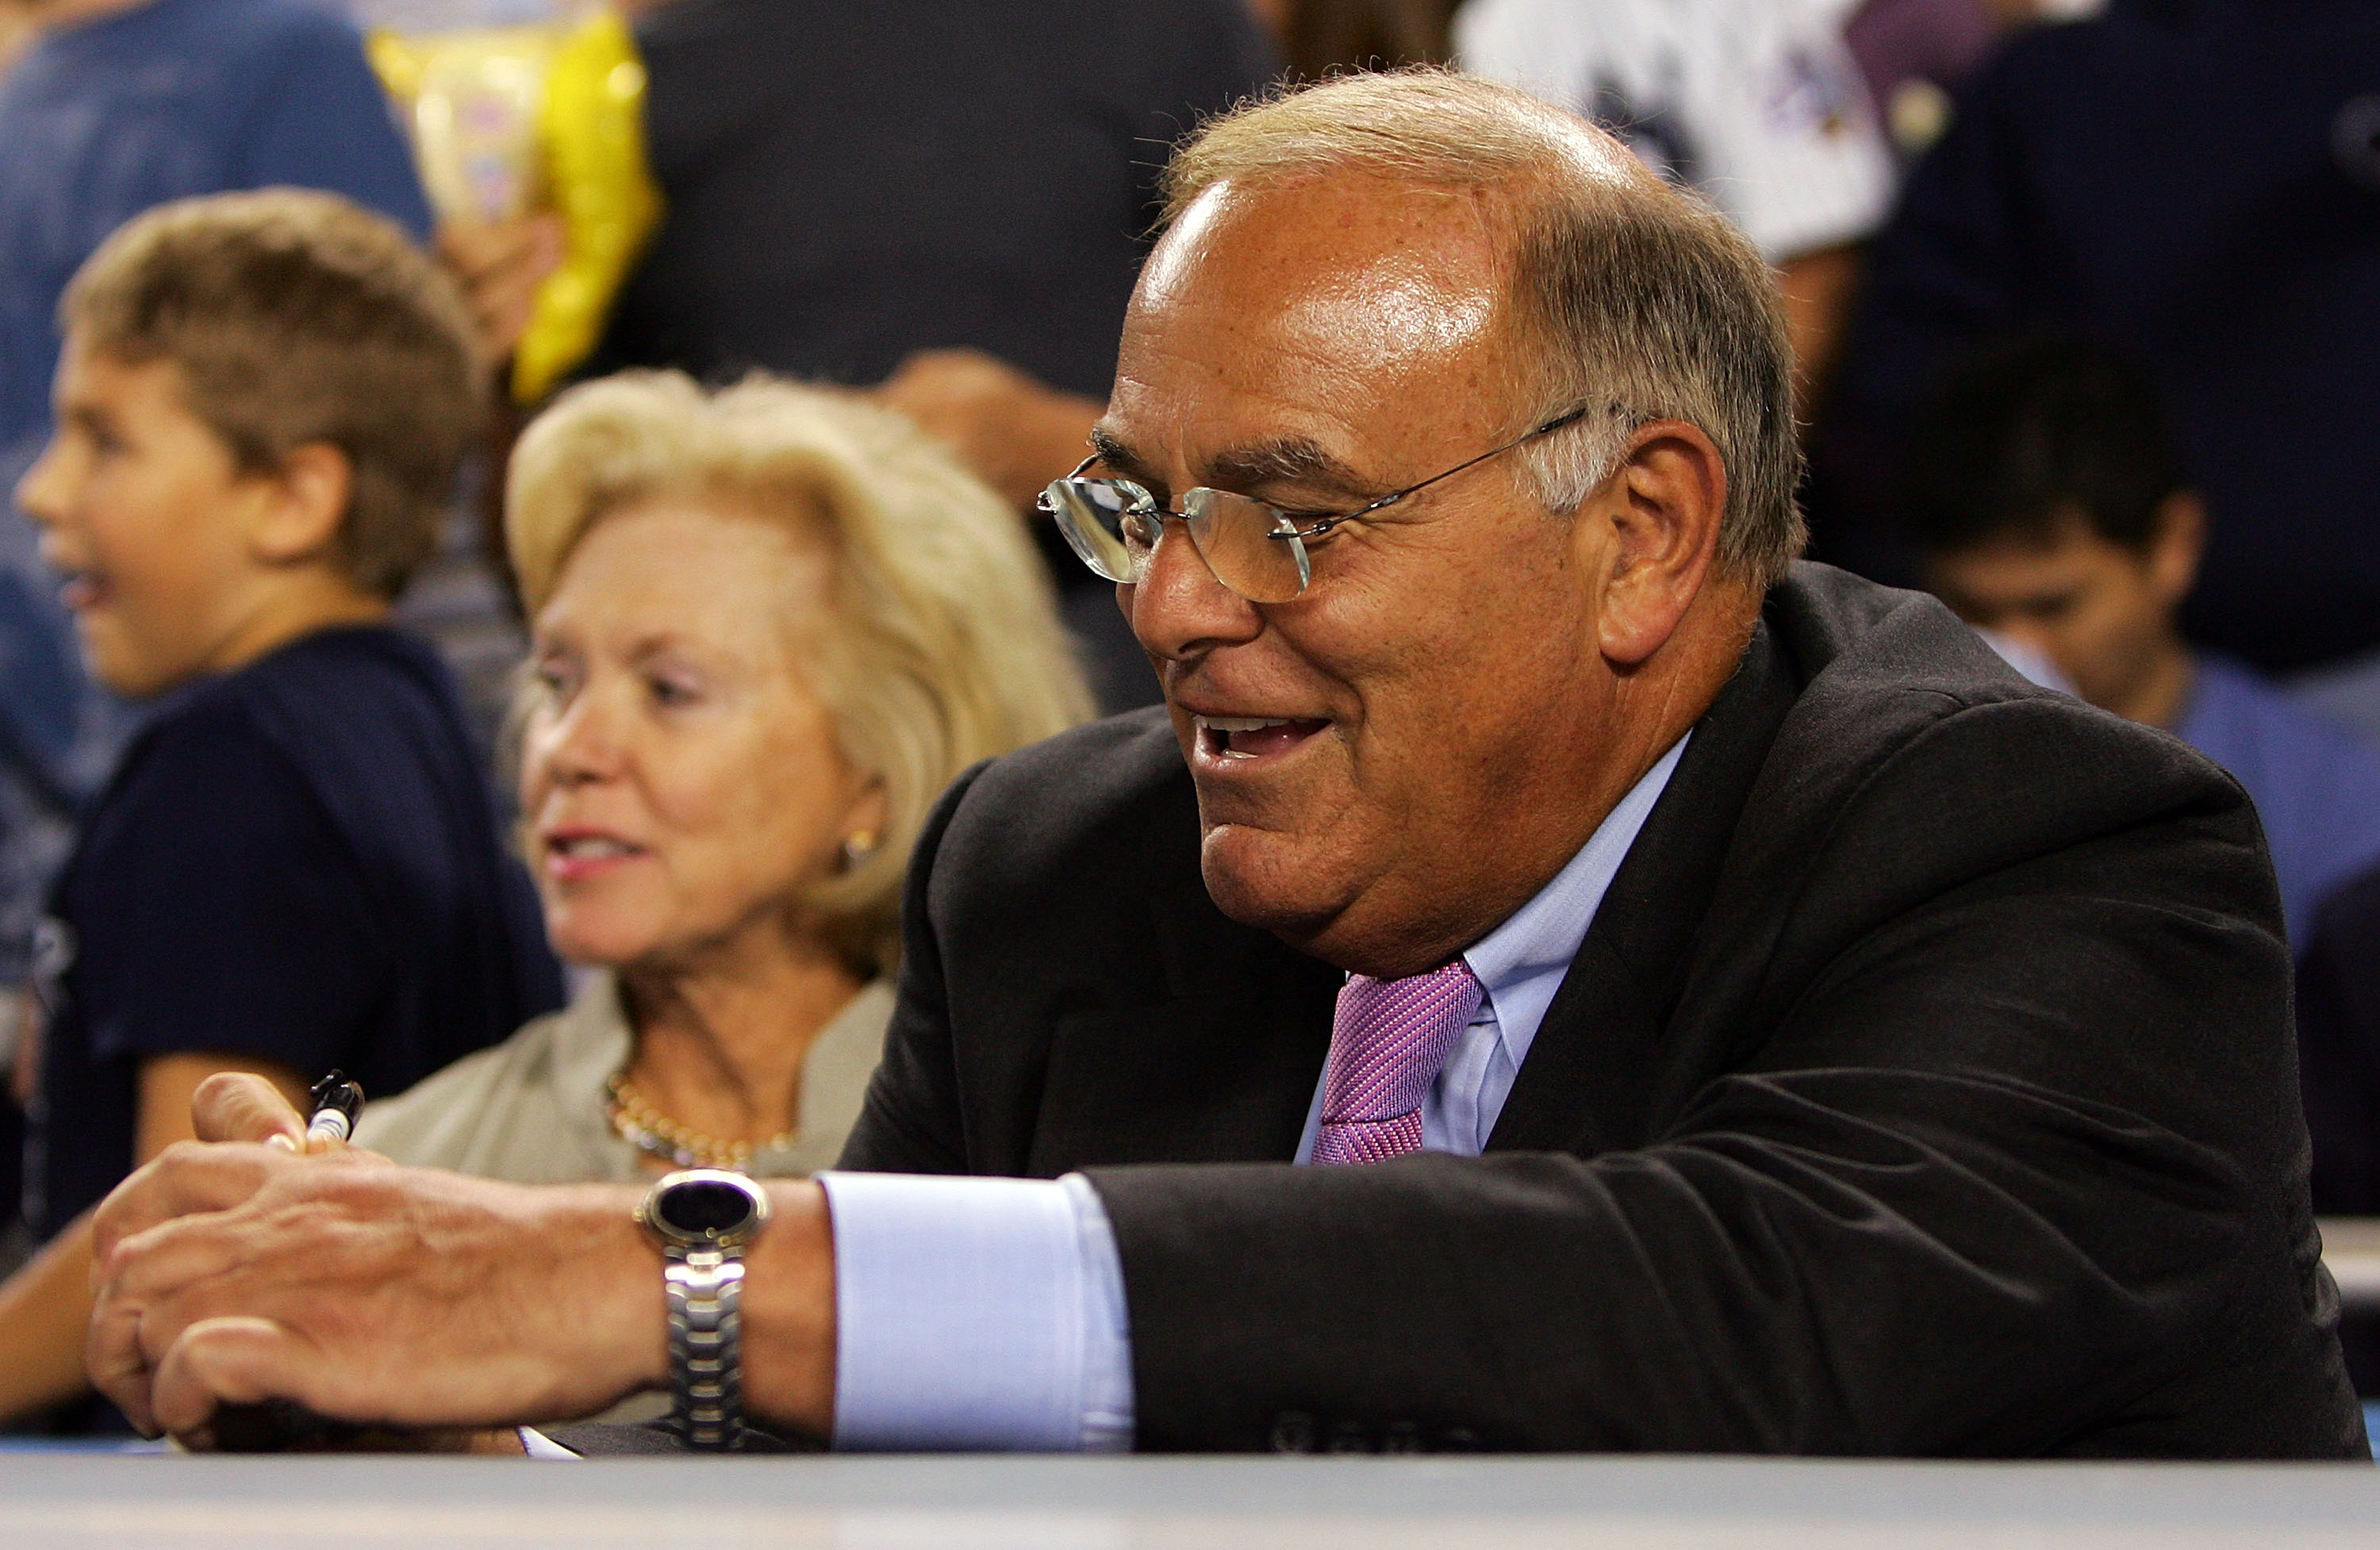 NEW YORK - SEPTEMBER 17:  Pennsylvania Gov. Ed Rendell signs a baseball as attends the game between the New York Yankees and the Chicago White Sox with his wife Midge September 17, 2008 at Yankee Stadium in the Bronx borough of New York City.  (Photo by J